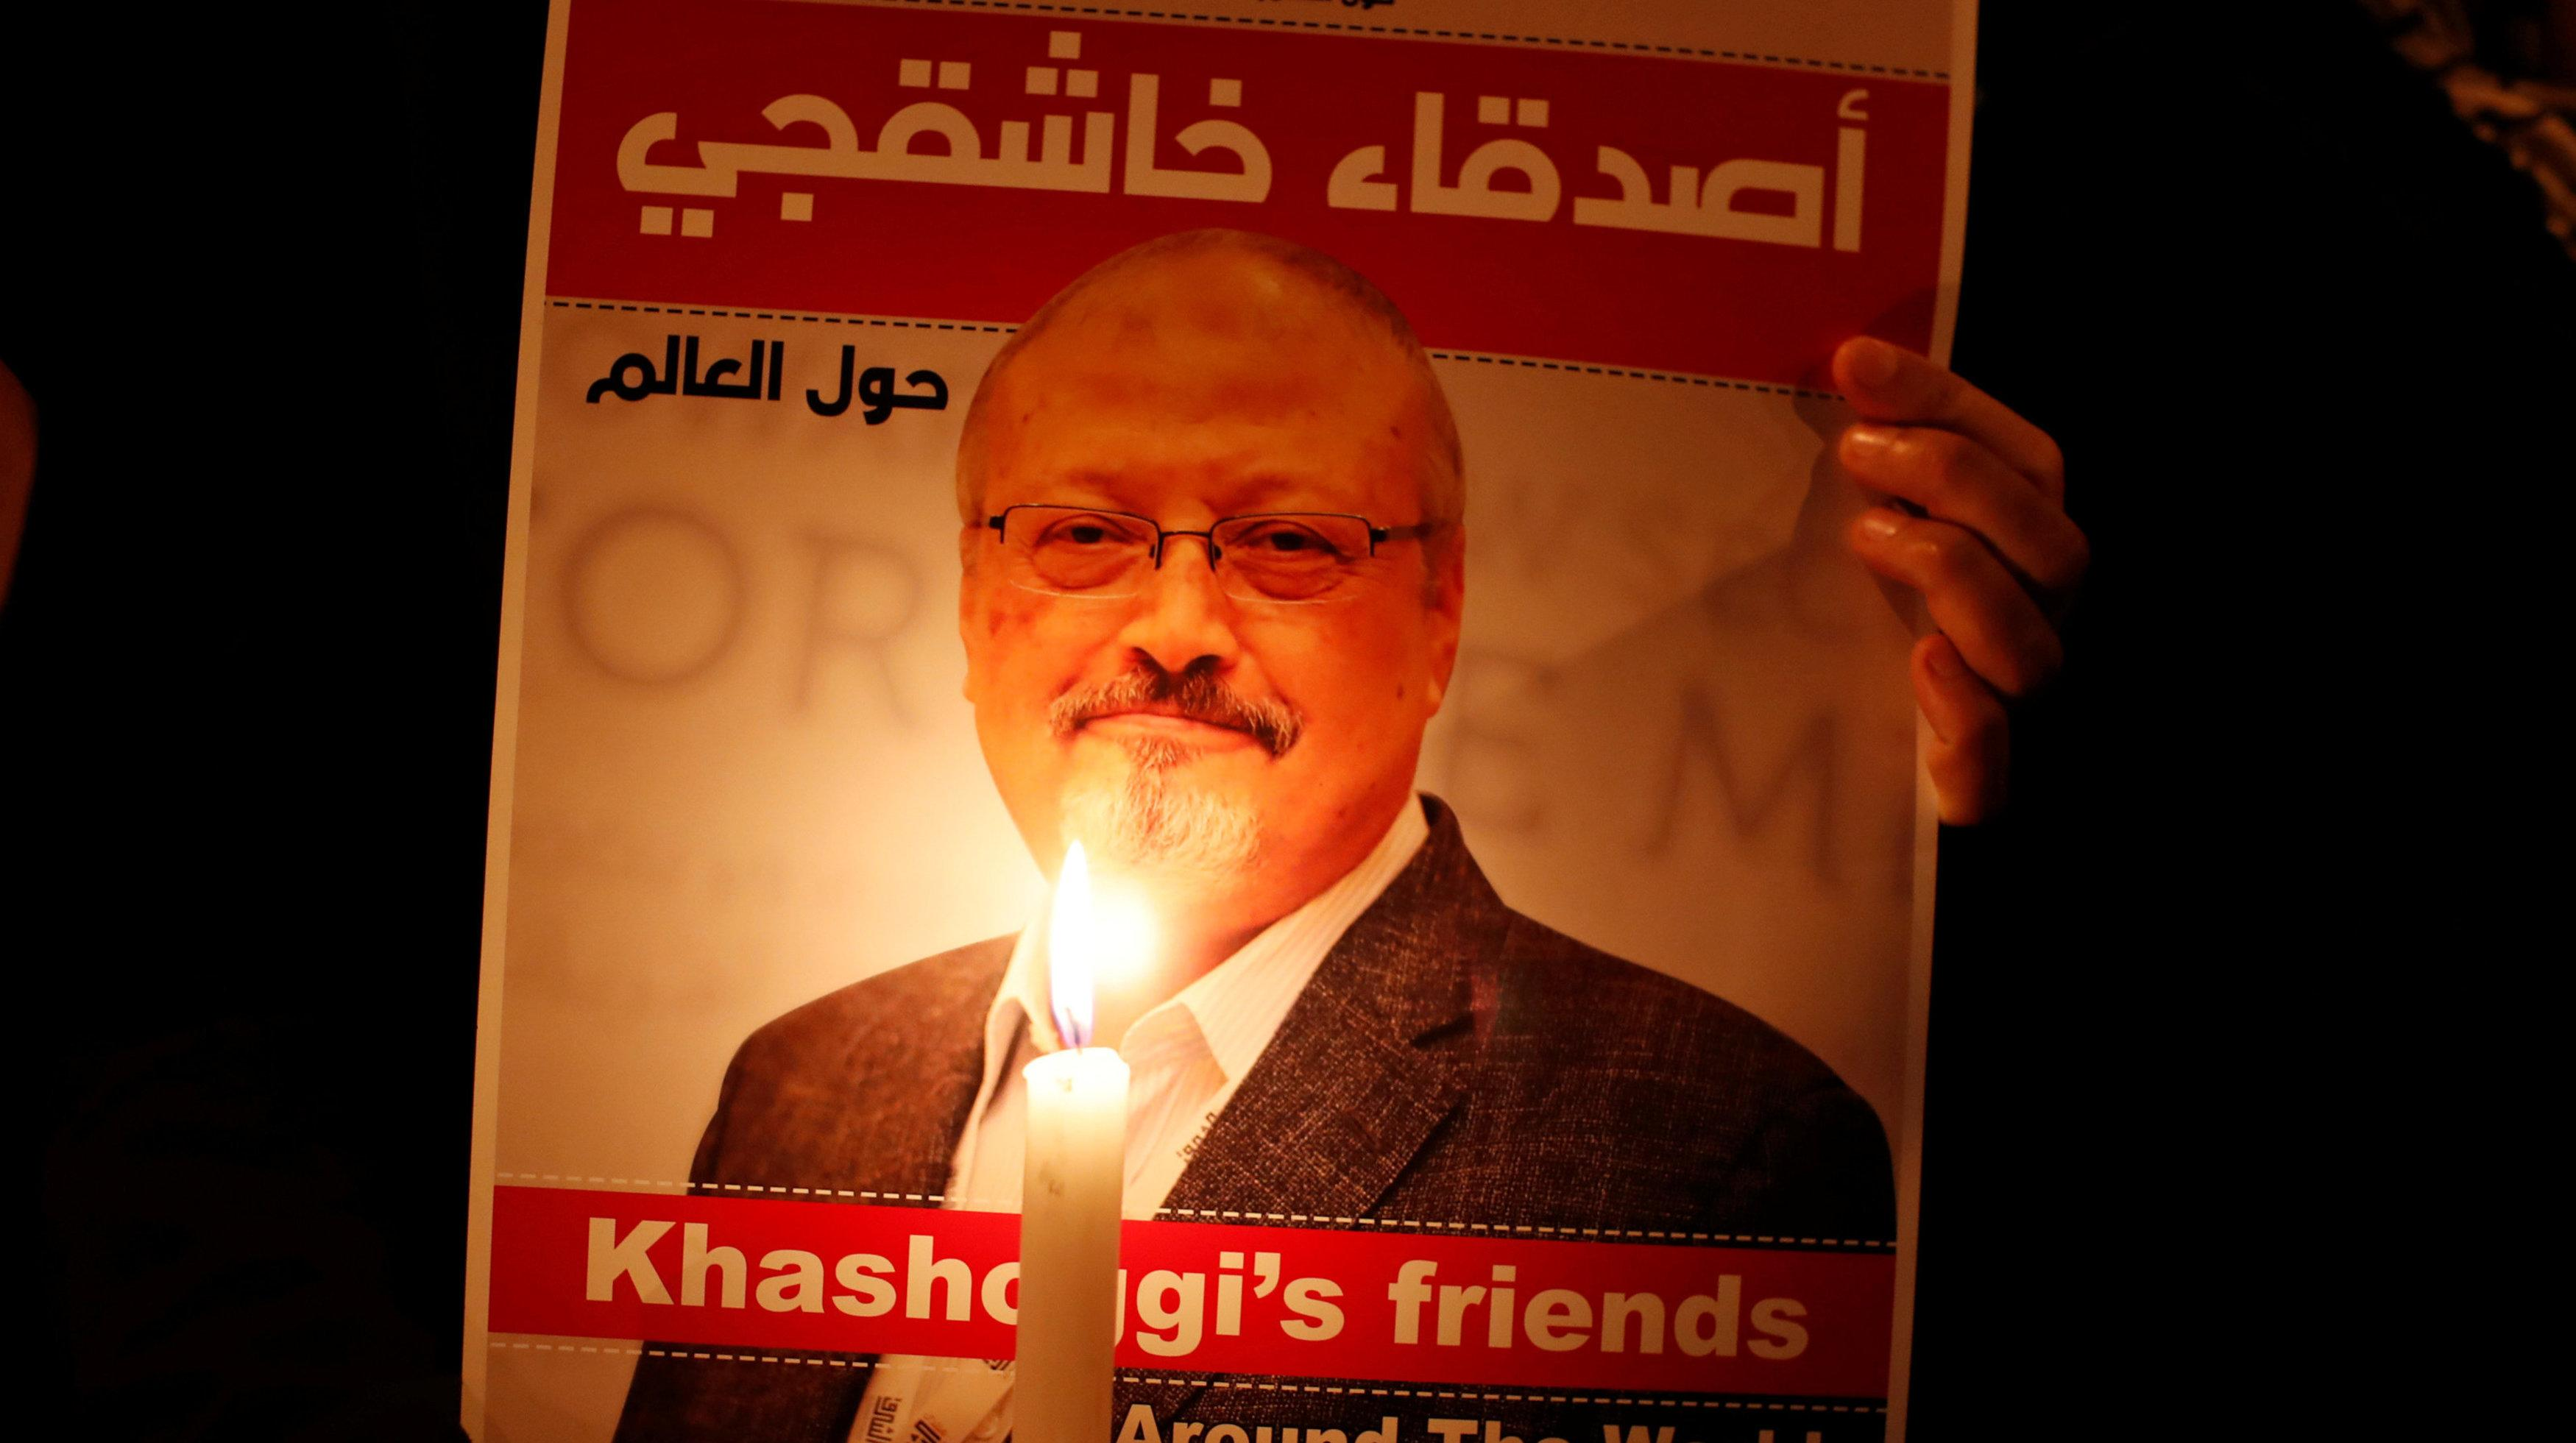 Jamal Khashoggi's Body Parts May Have Been Smuggled Out In Luggage, Says Turkish Official